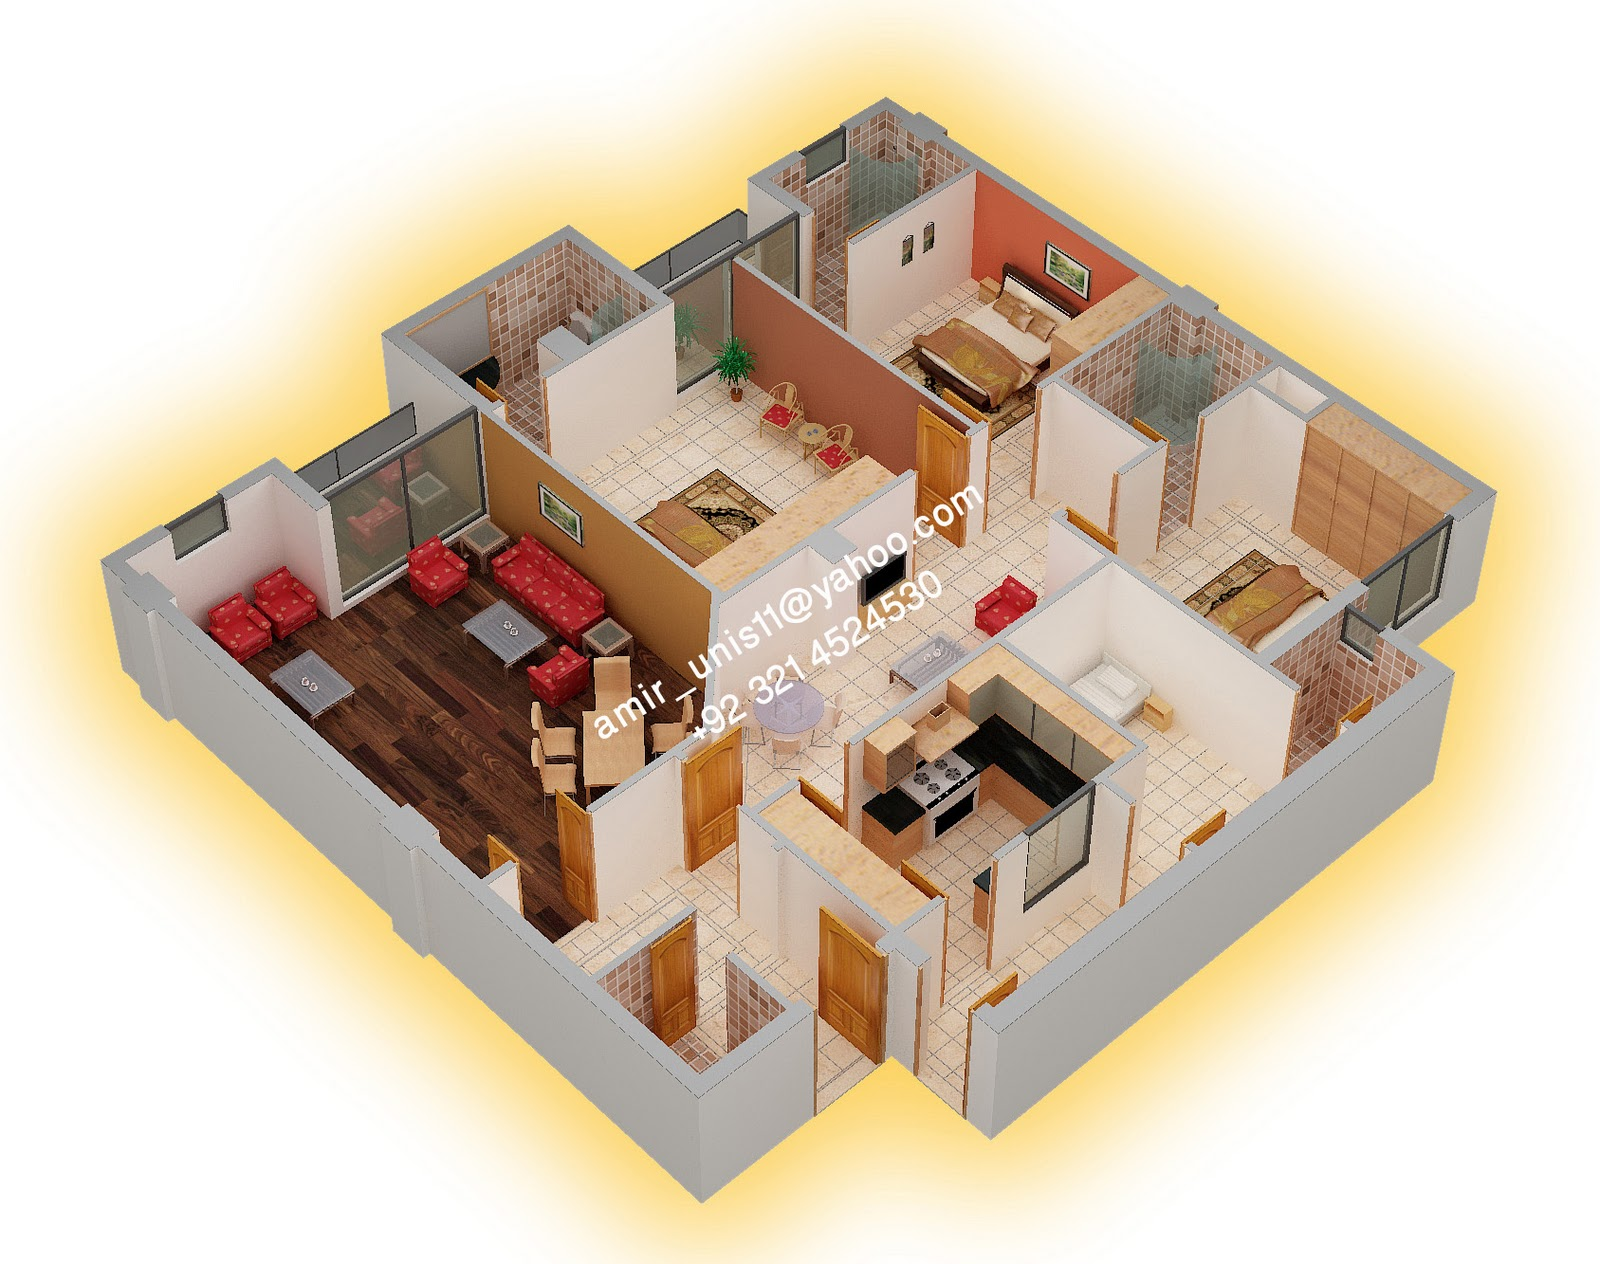 house floor plans 3 bedroom 2 bath 3d. 3d floor plan house plans 3 bedroom 2 bath